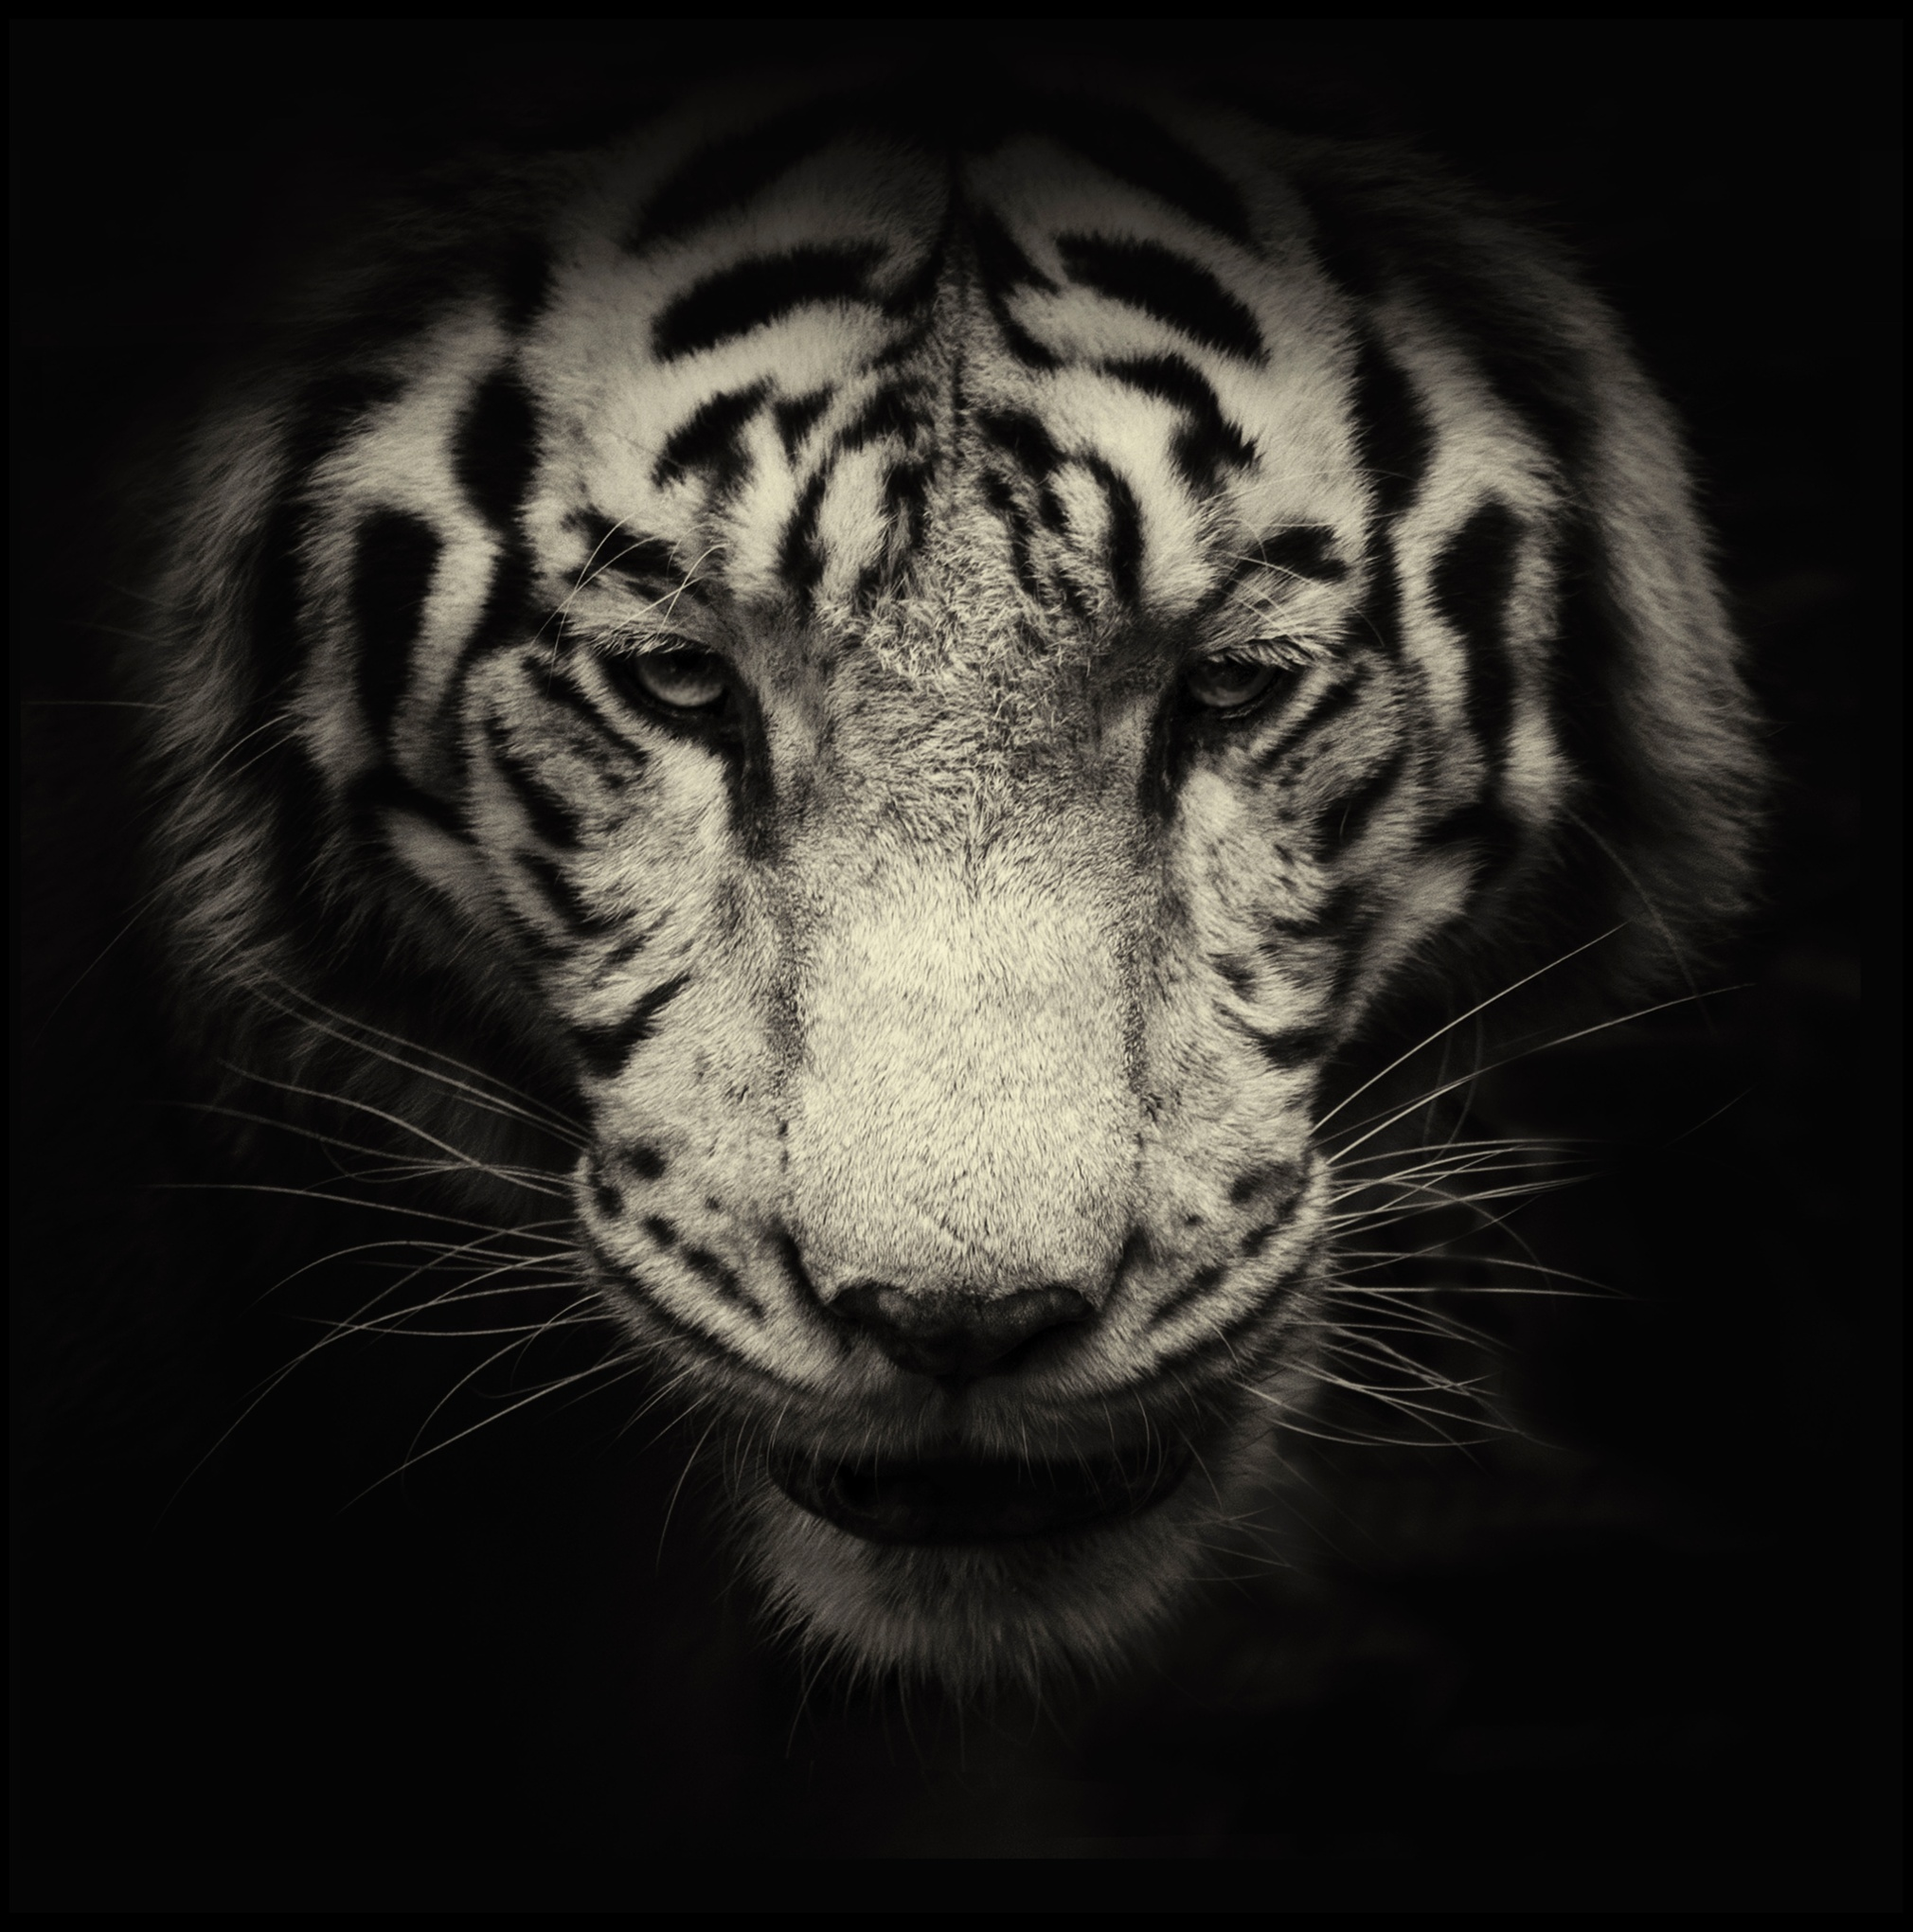 animals tiger zoo portraits animal dark side darkness moody sinister captive pose sides teuscher photographs alex tigers creatures photographer golden